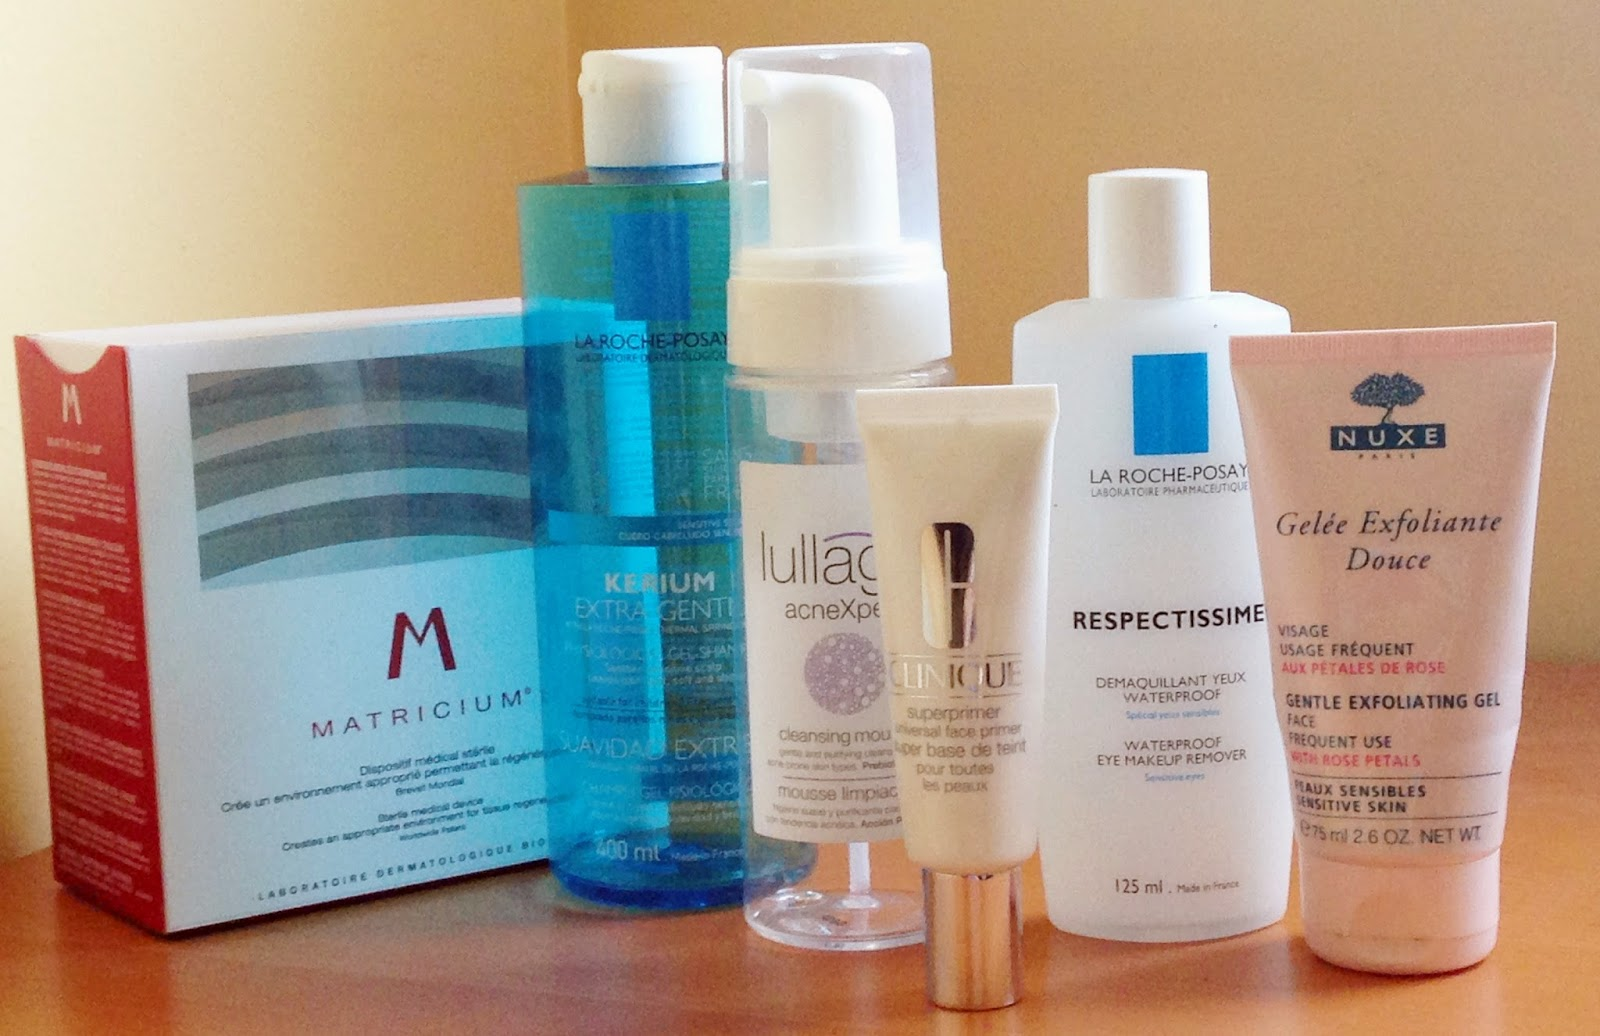 Matricium, Bioderma, Lullage, blog, La Roche Posay, Nuxe, Clinique, primer